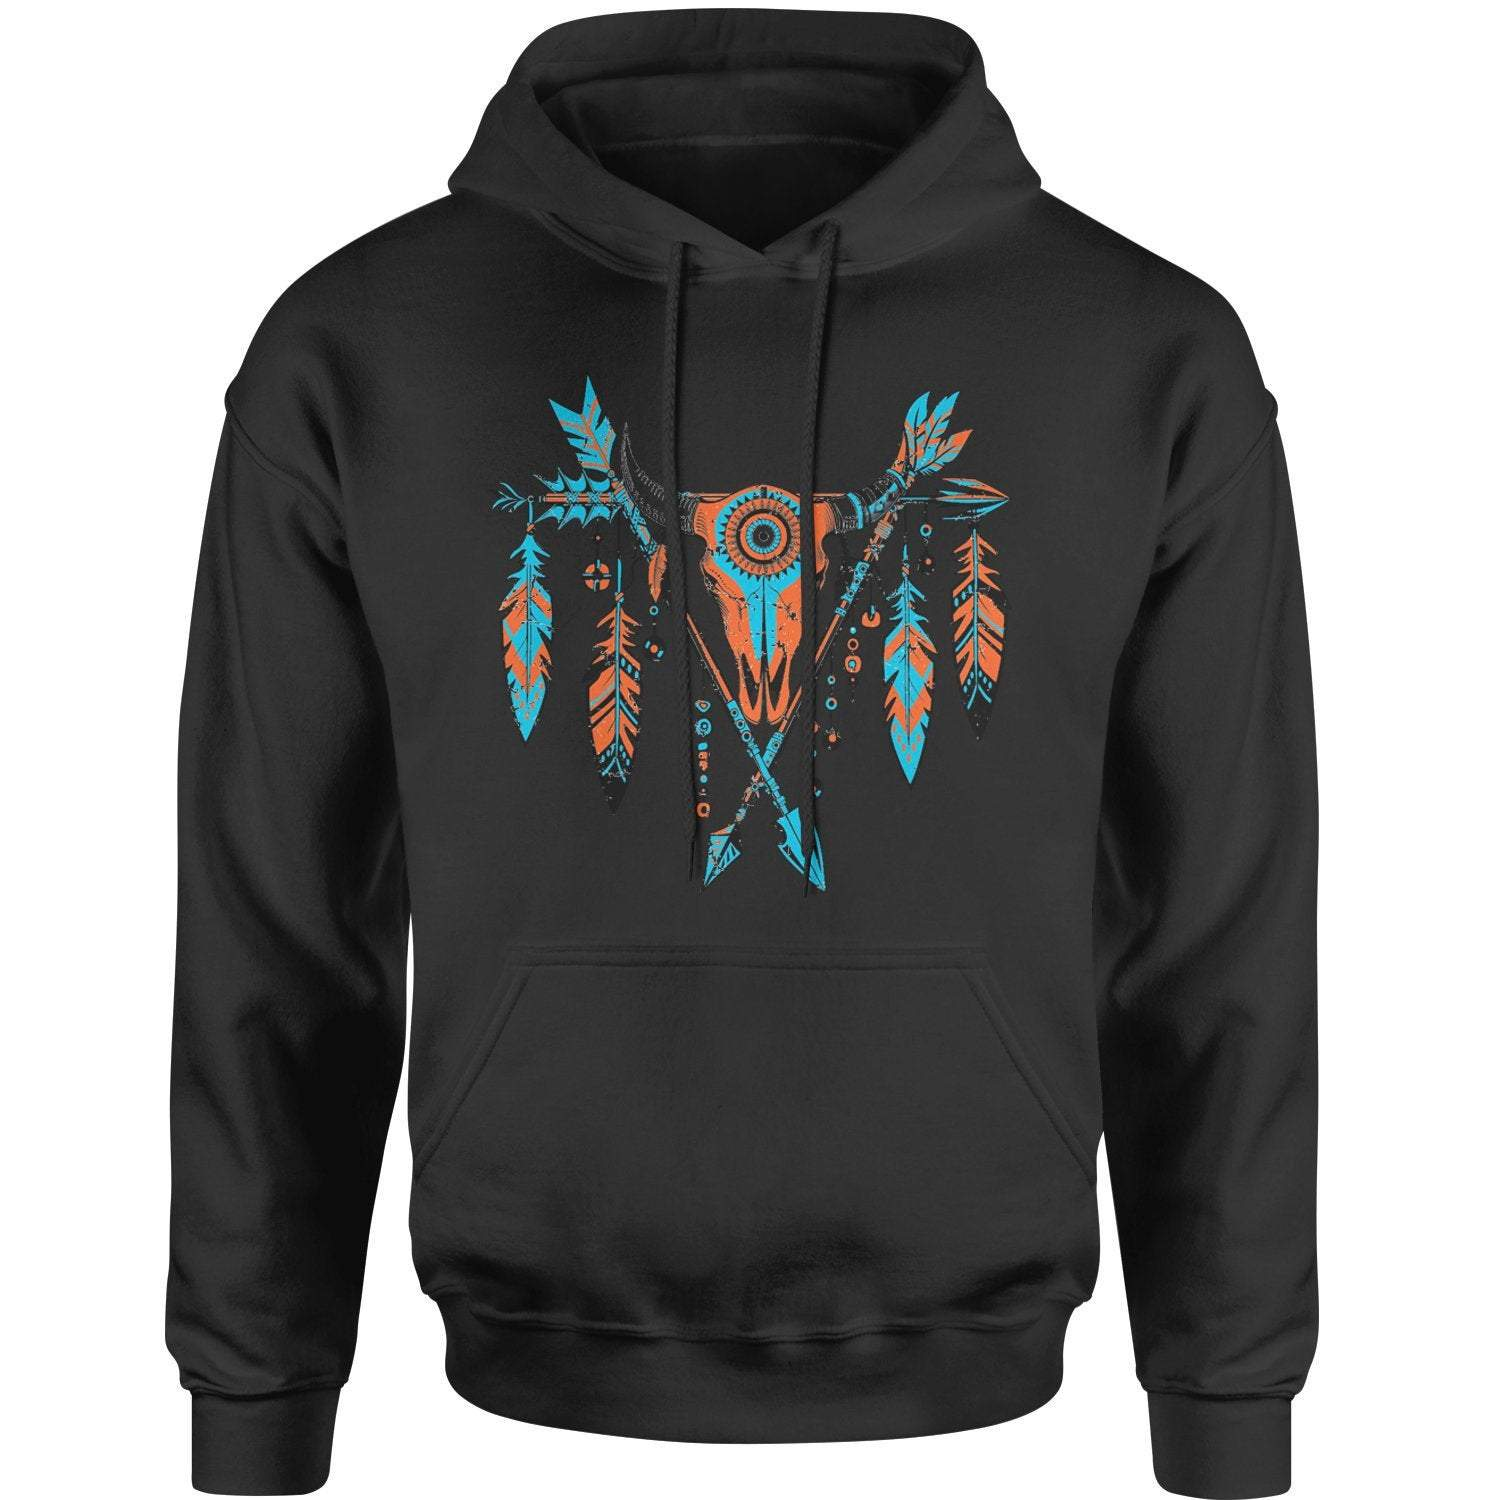 Native American Artwork Cattle Skull Hoodie Sweatshirt Ancient Treasures Ancientreasures Viking Odin Thor Mjolnir Celtic Ancient Egypt Norse Norse Mythology